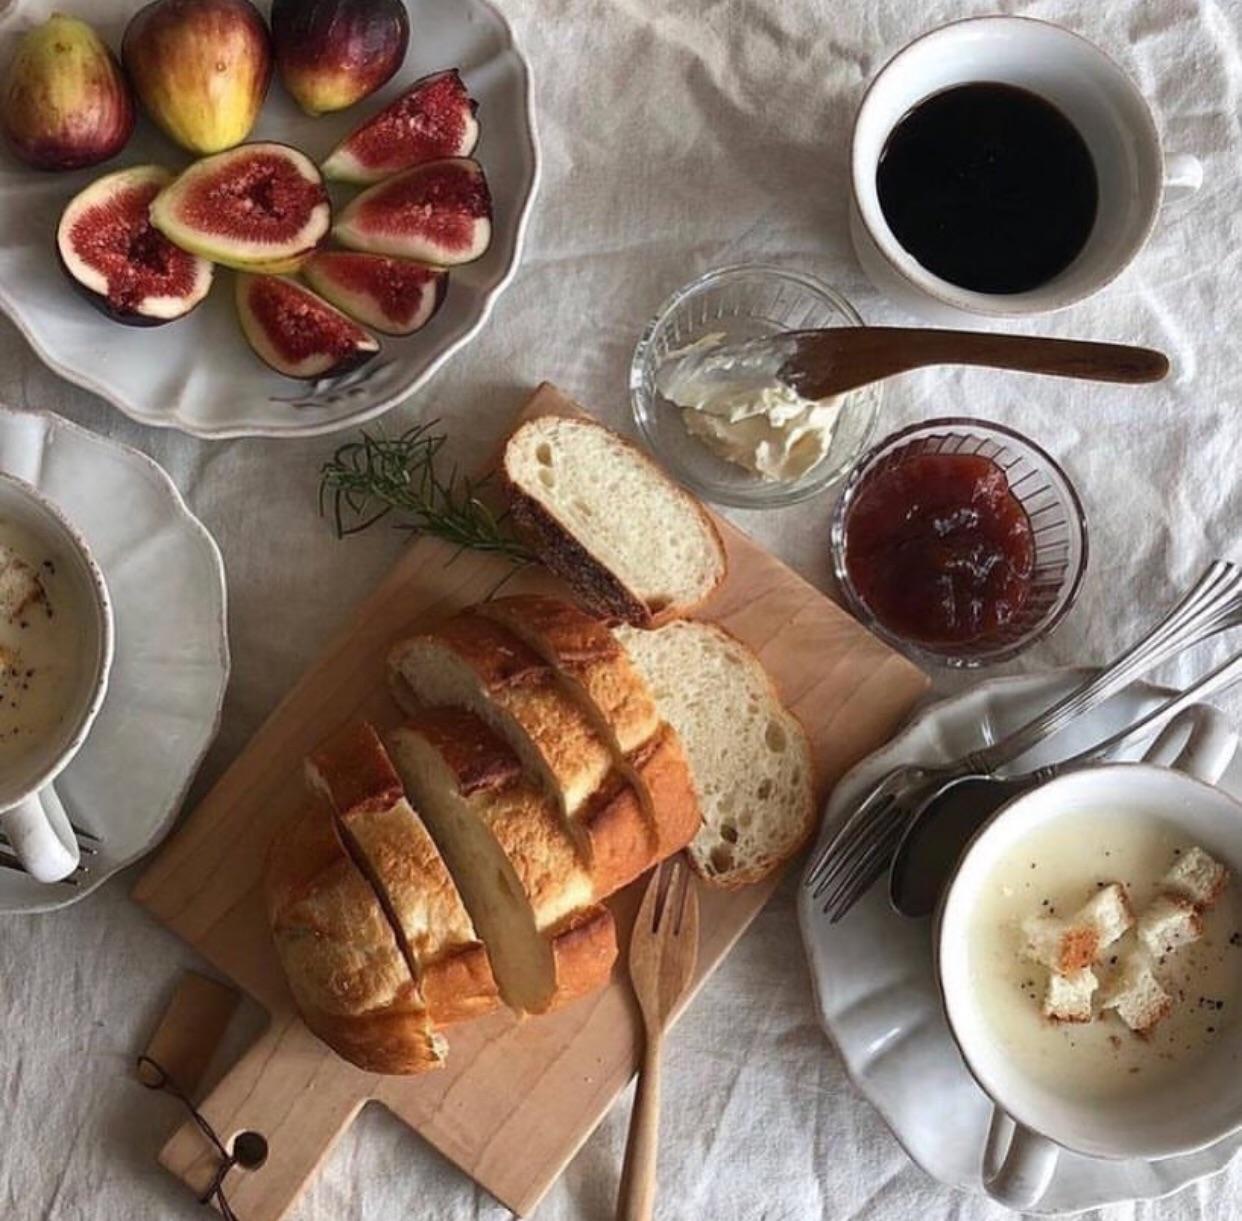 figs, fruit, bread and coffee